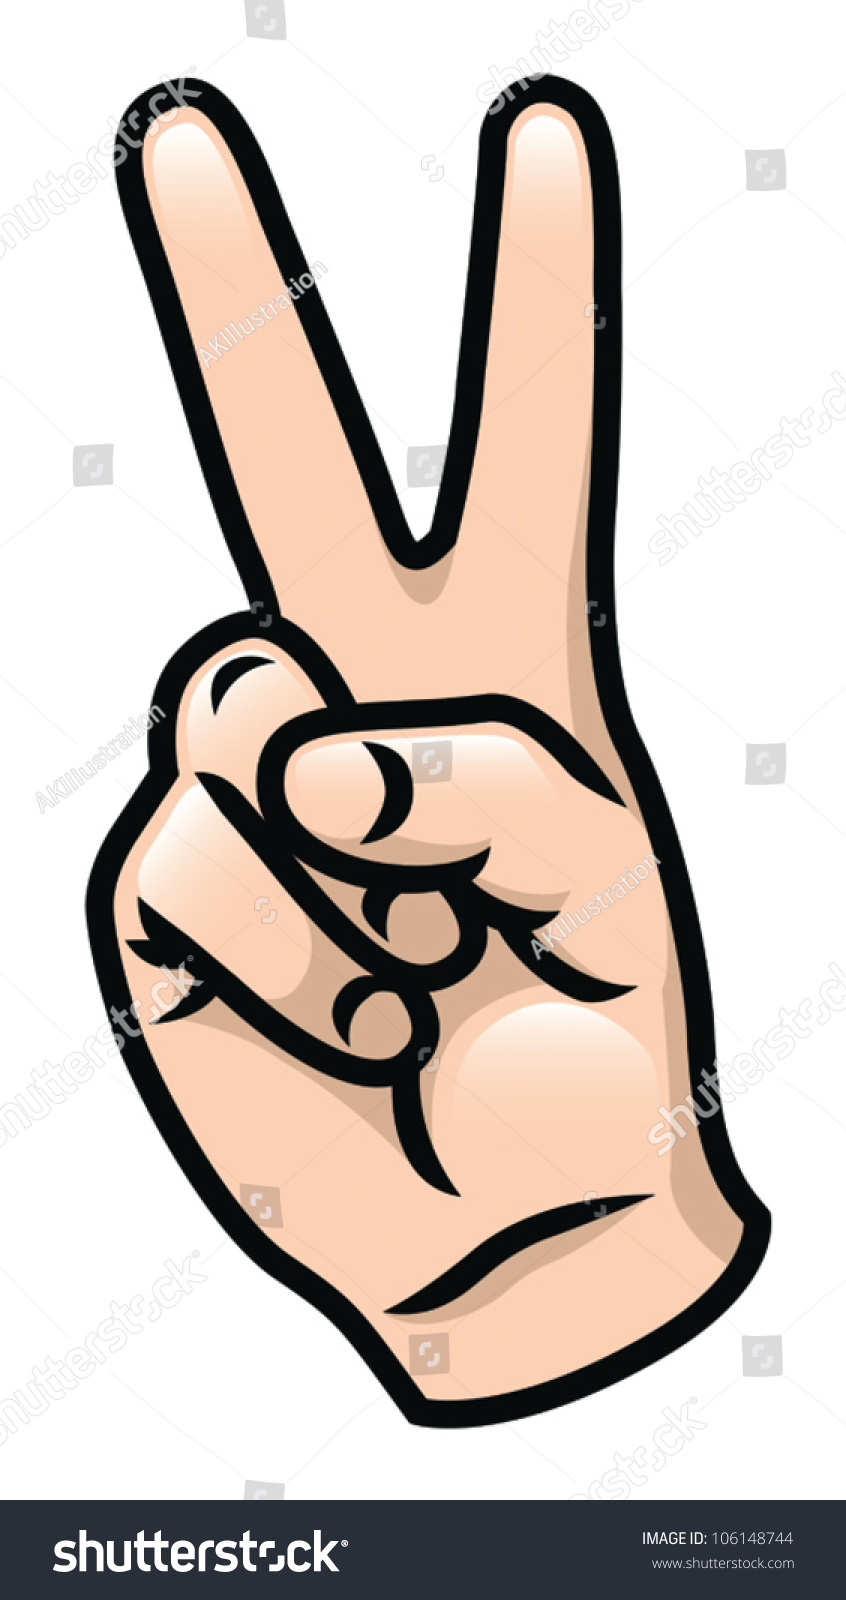 illustration cartoon hand giving peace sign stock vector